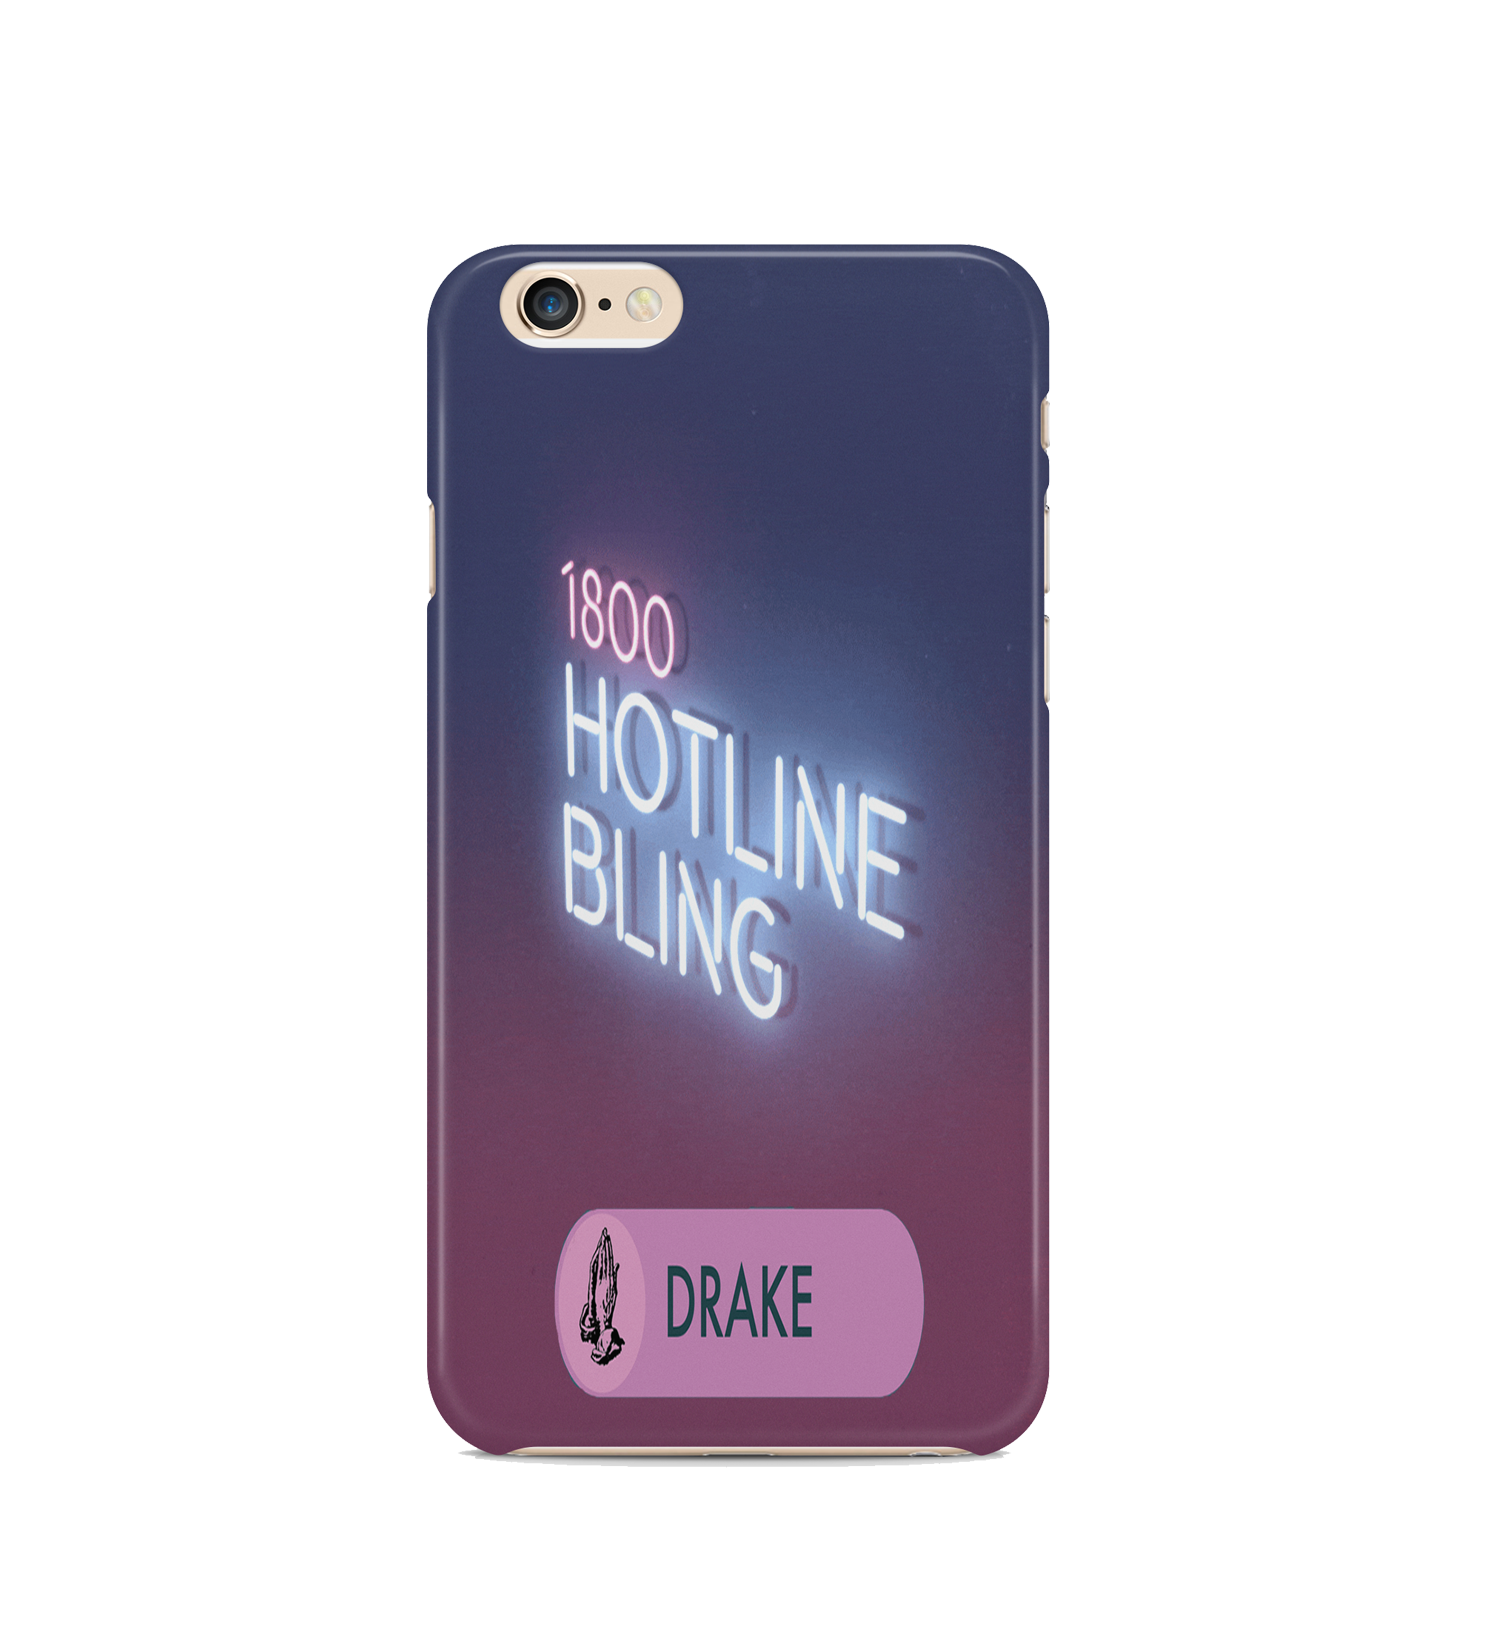 Phone case iphones. 1800 hotline bling png svg free library